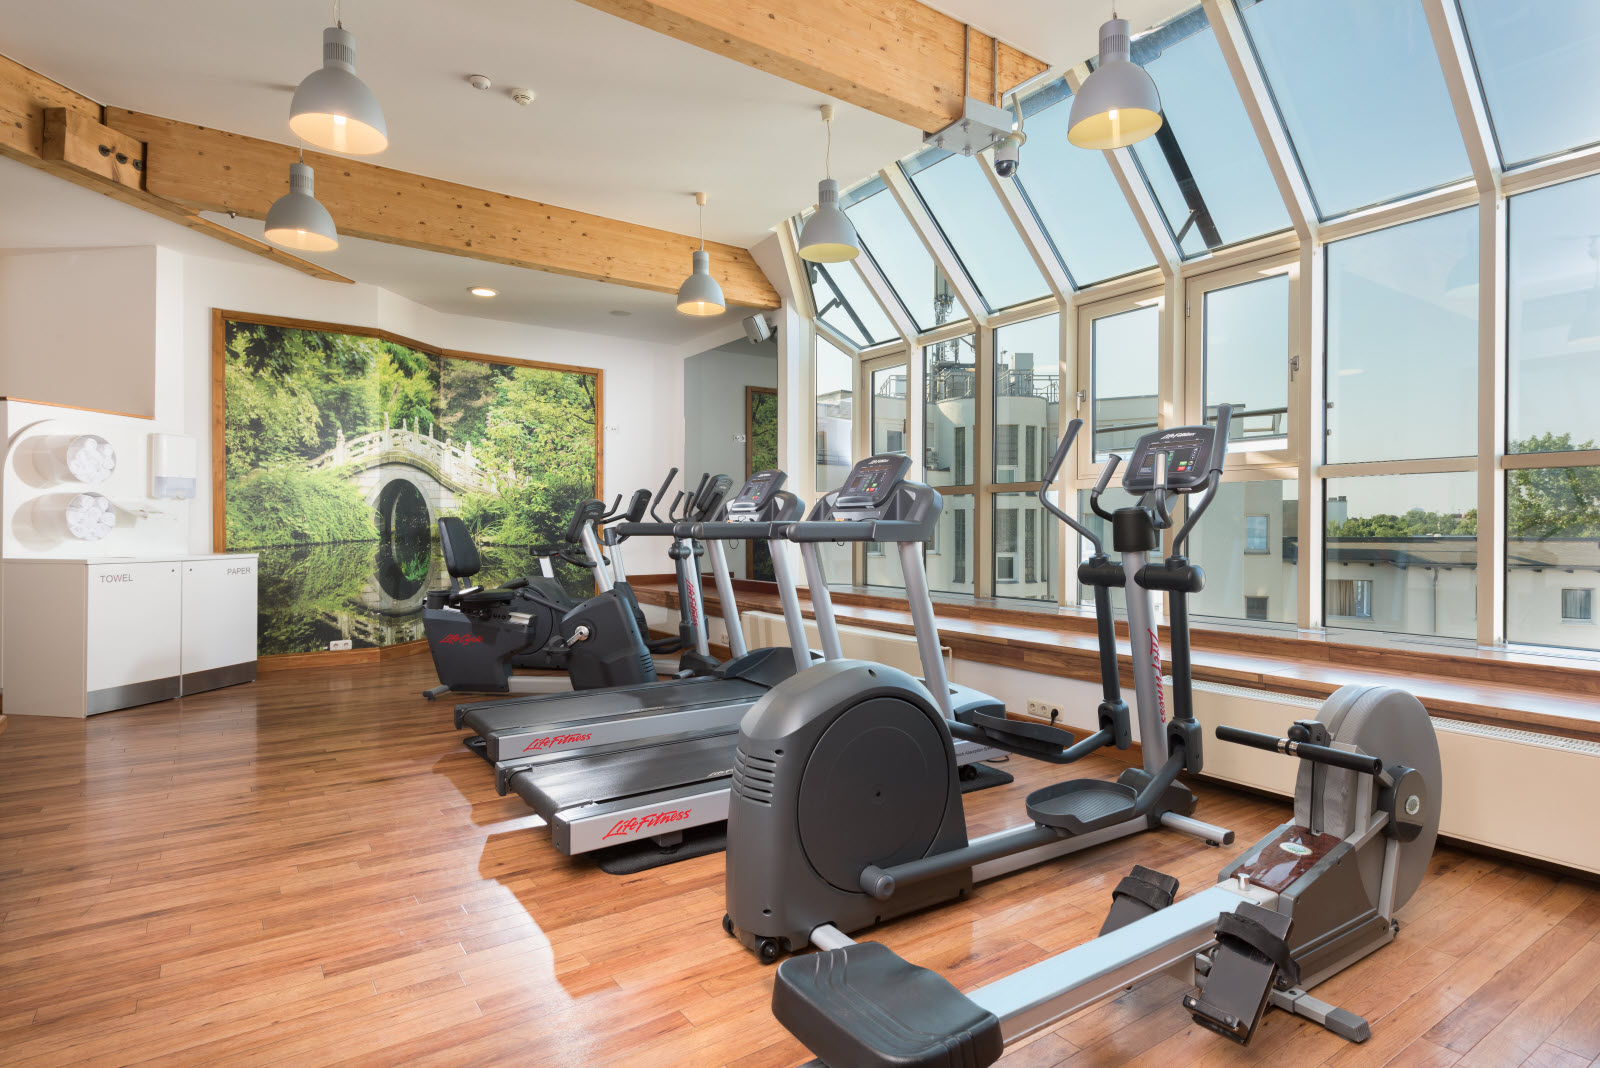 Hotel Scandic Berlin Kurfürstendamm, Gym Hotel Berlin, Wellness Hotel Berlin